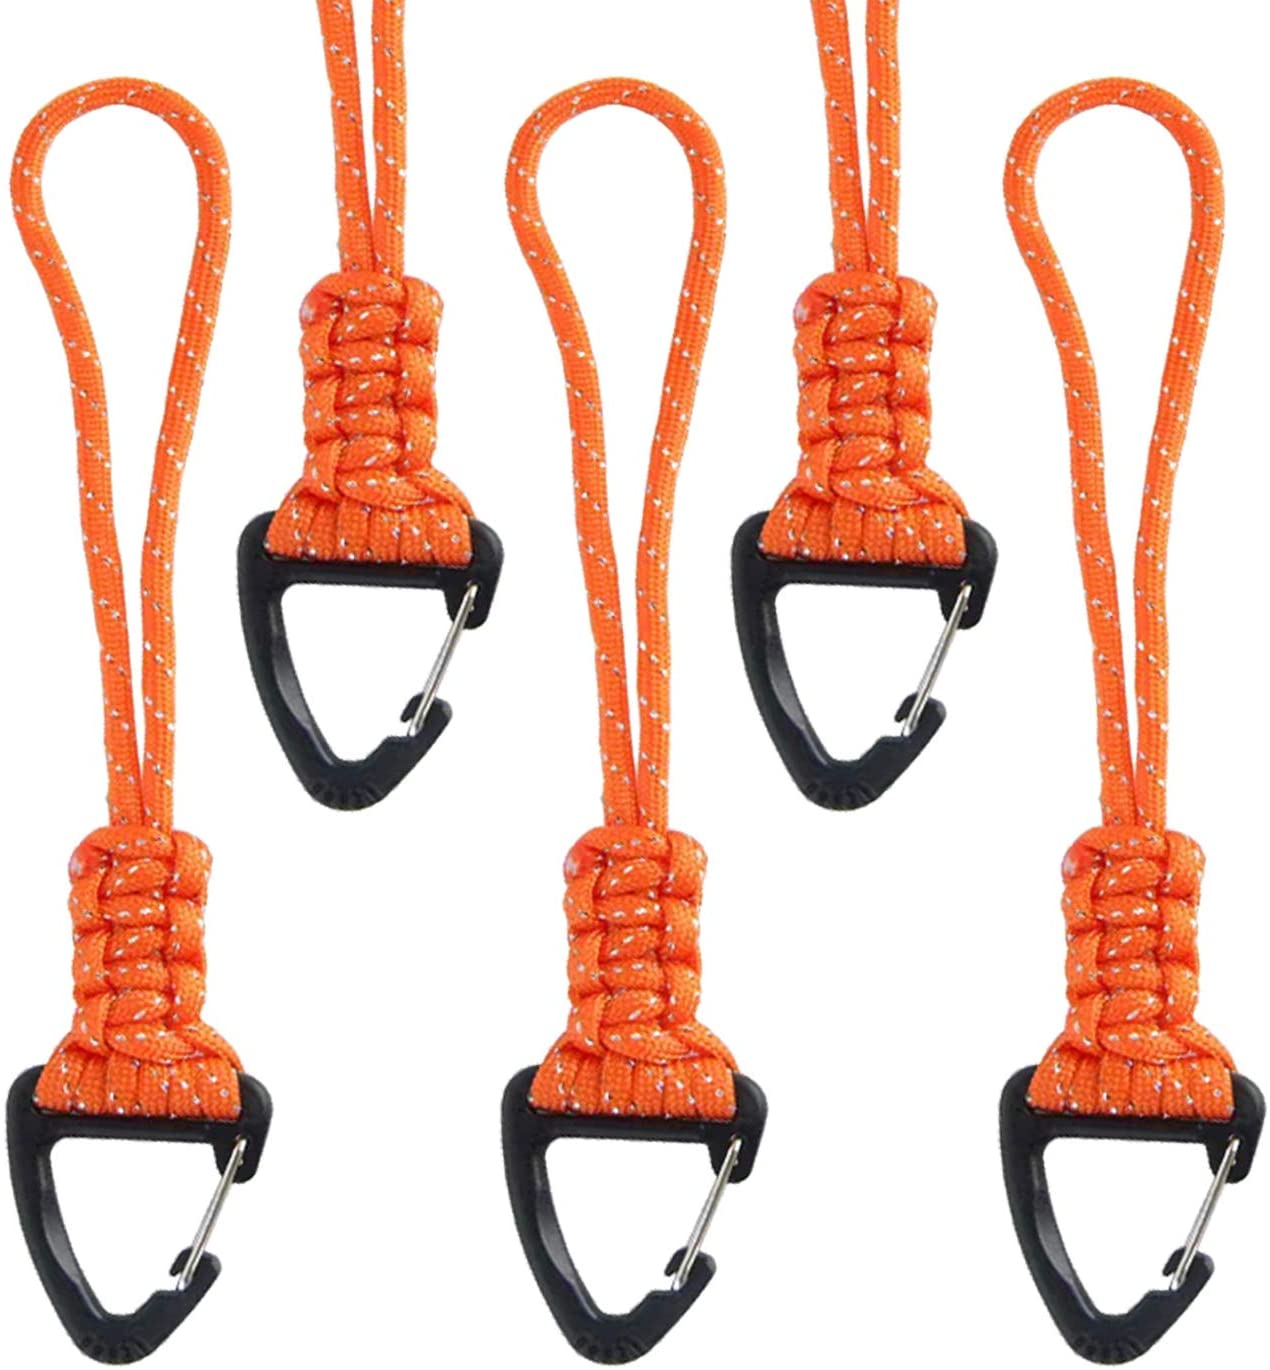 BSGB 5PCS Paracord Lanyard Keychain Tactical Backpack Military Safety Hand Wrist Strap Tool Lanyard with Key Chain Ring Holder Tool Fall Protection Tool Tail Attachment Outdoor Hiking Camping